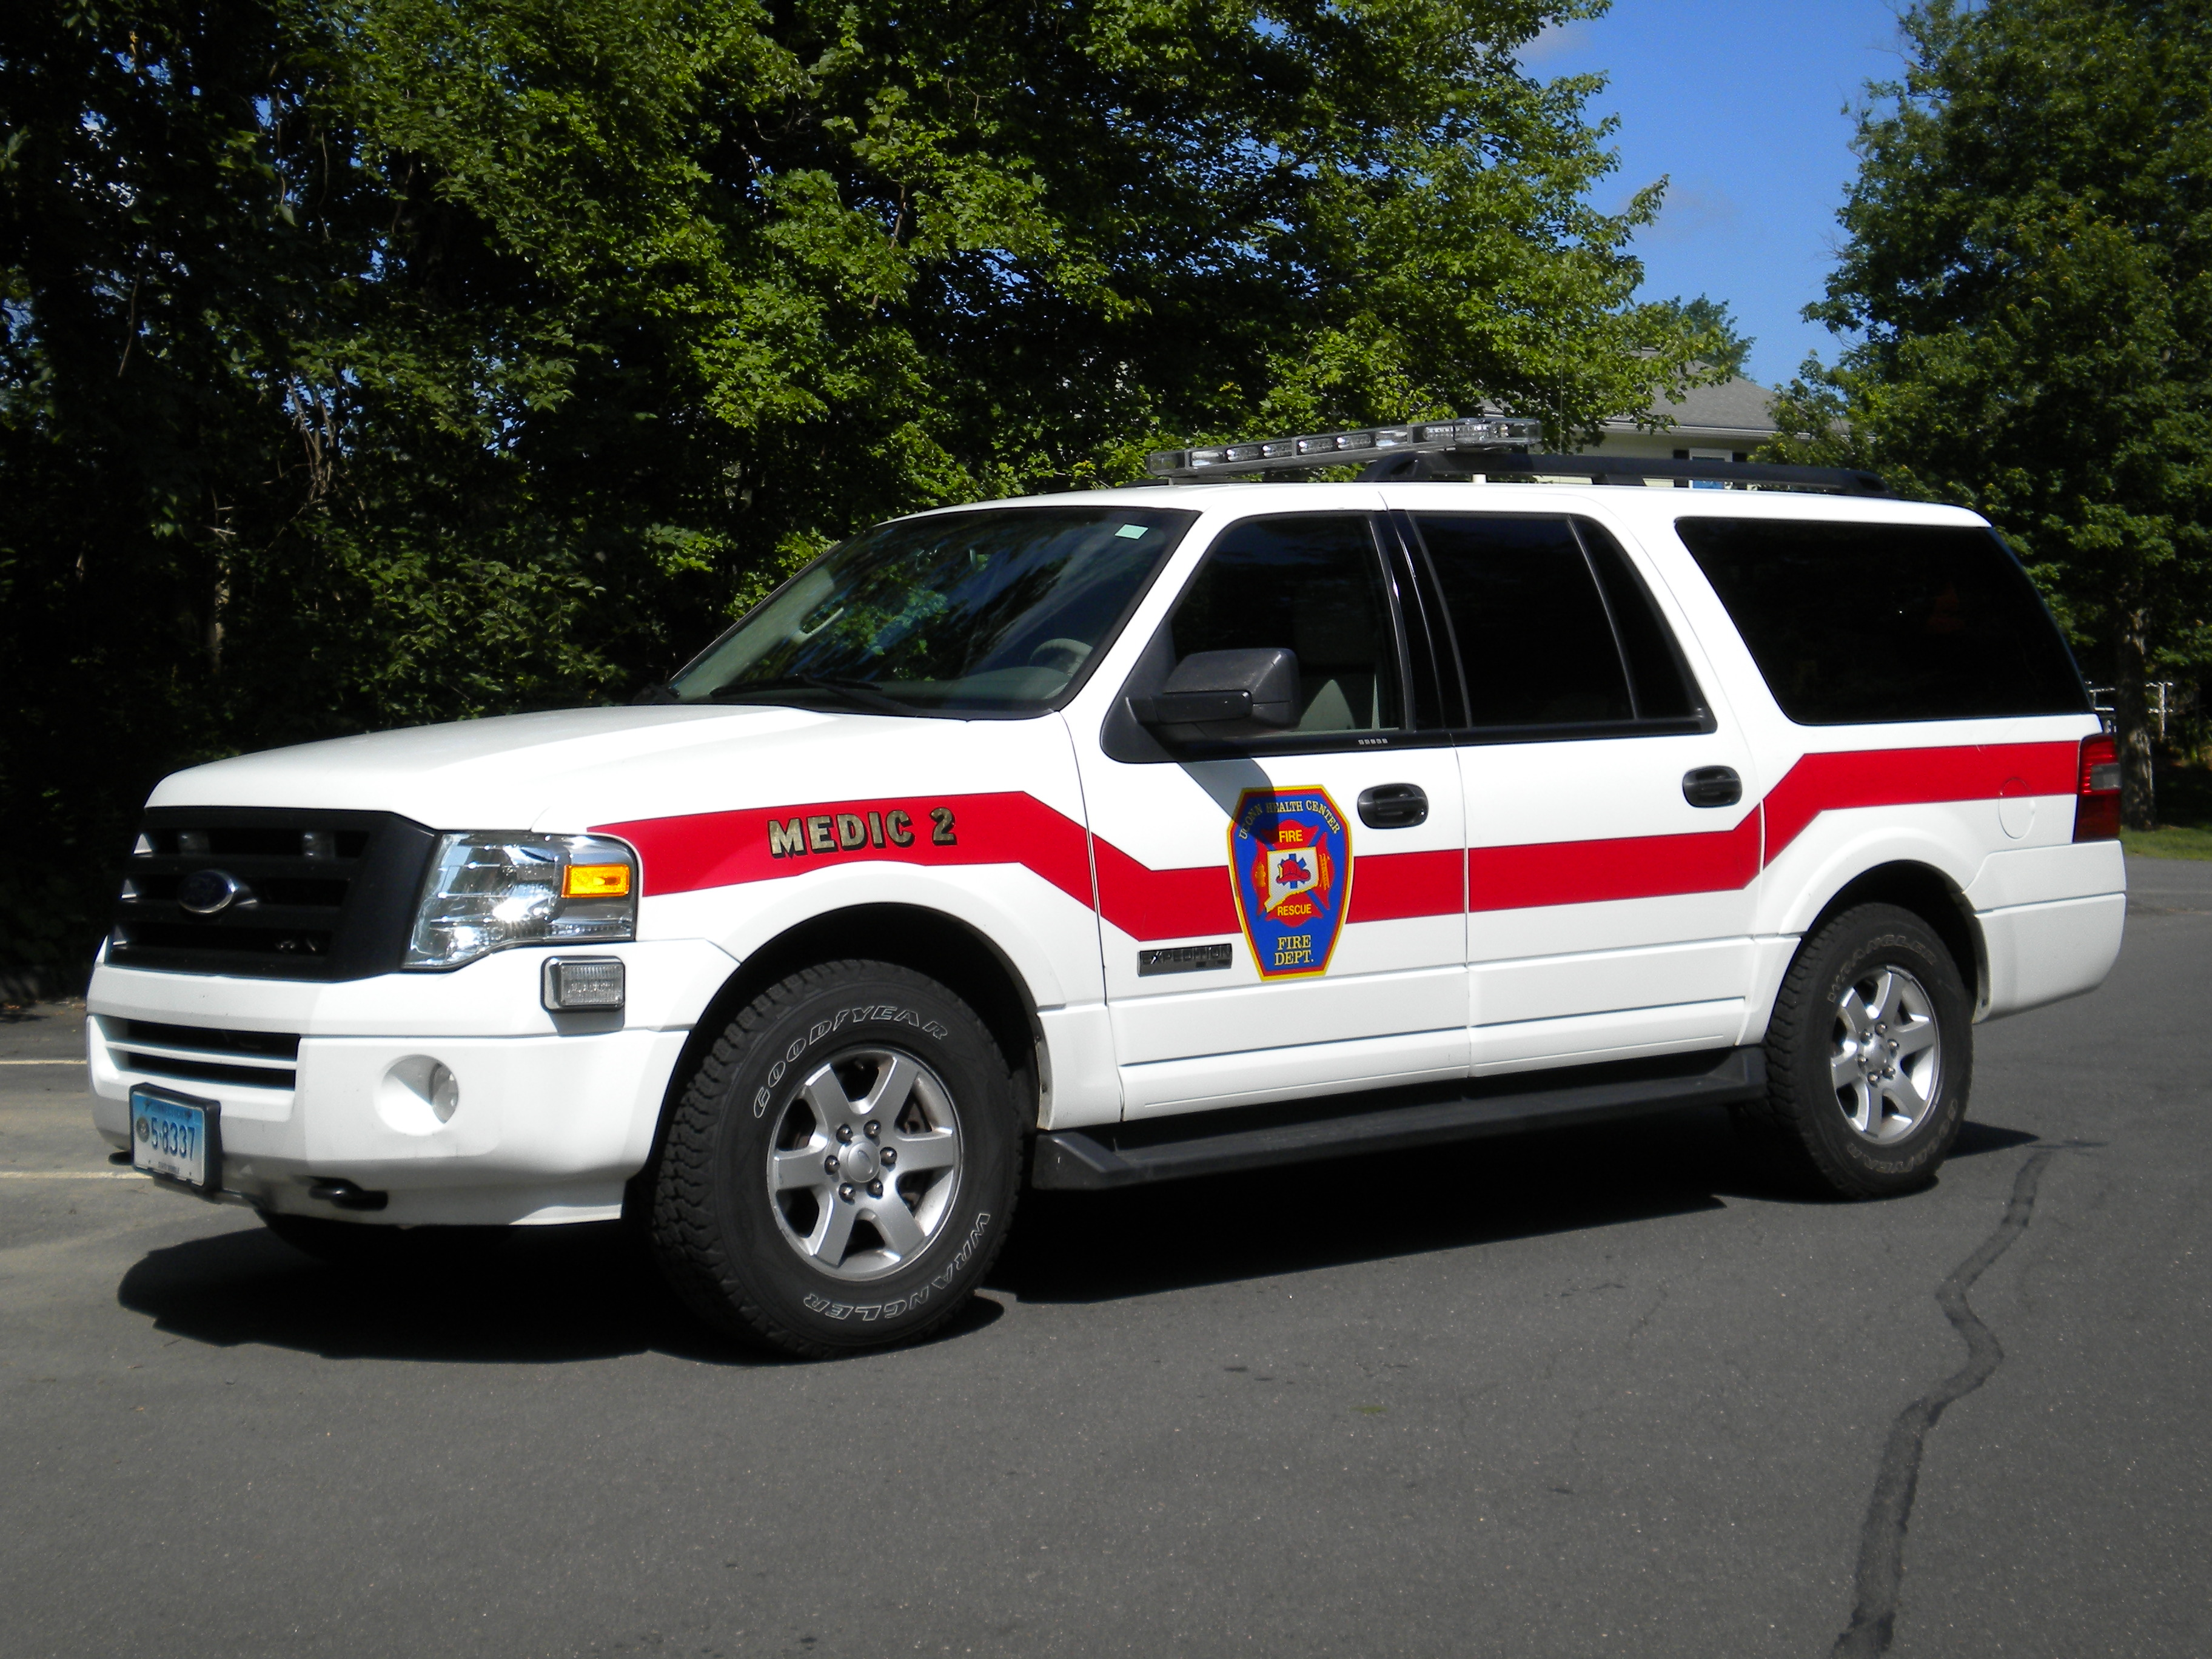 Medic 2 – 2008 Ford Expedition